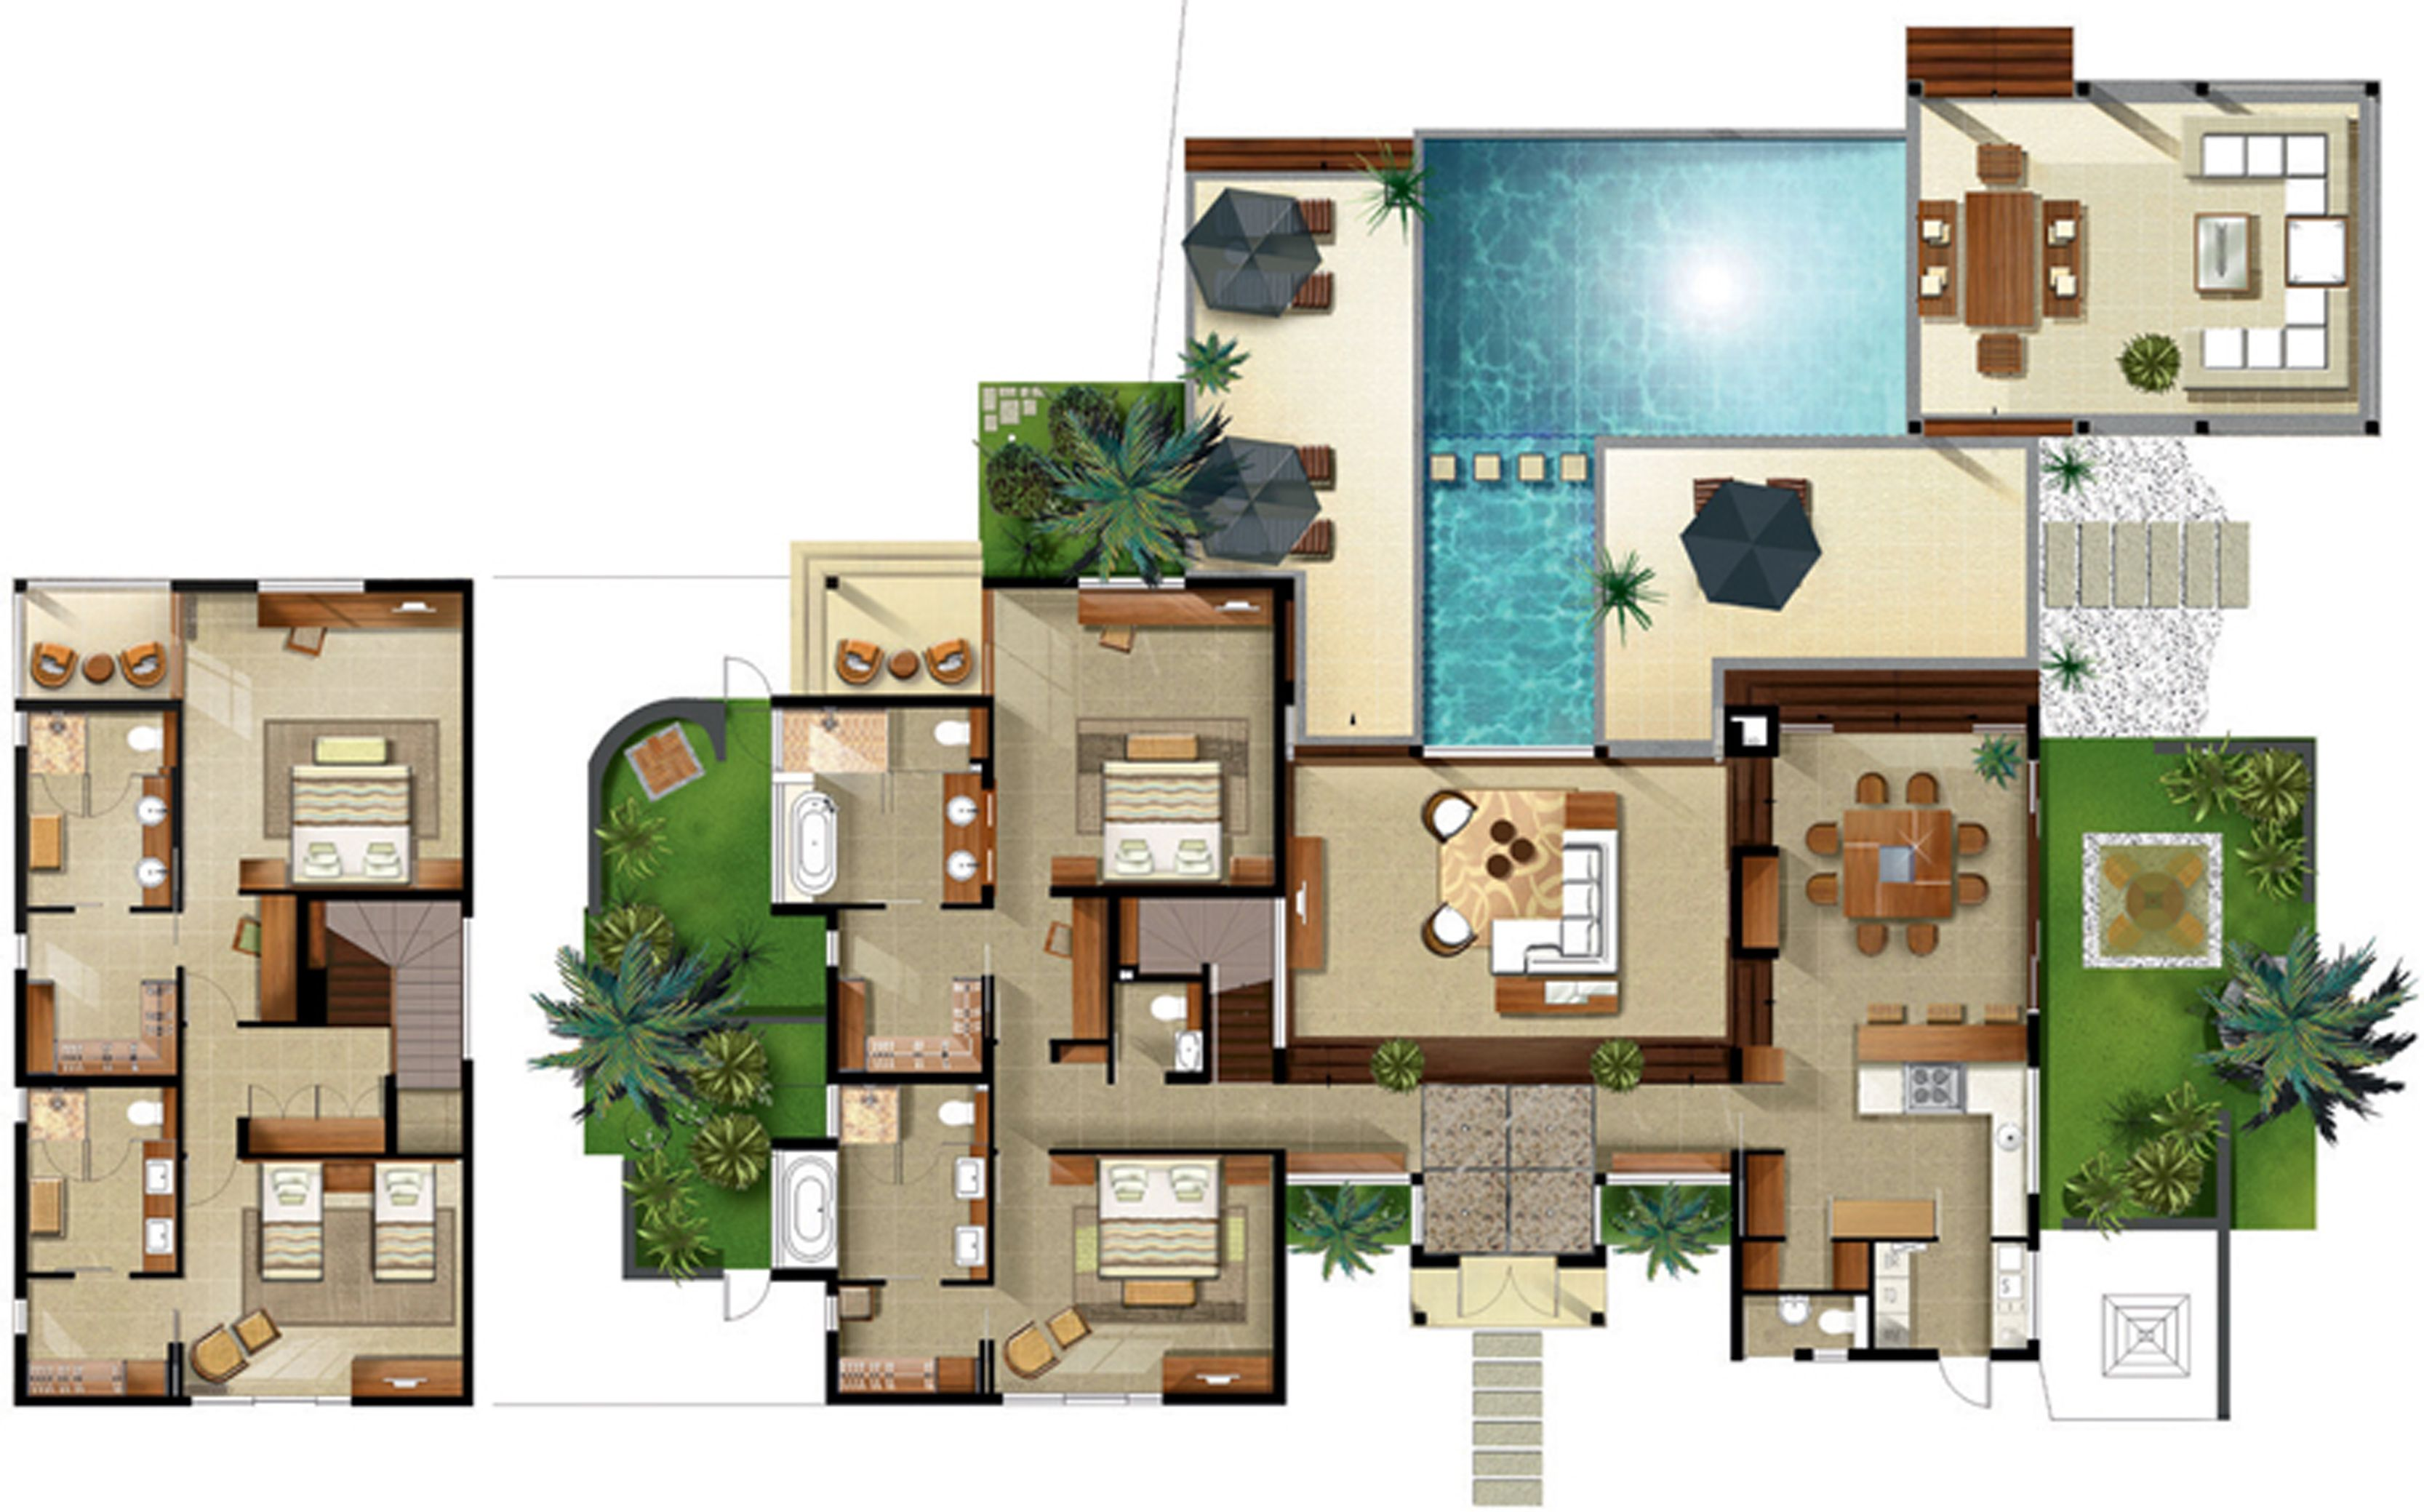 Disney beach club villas floor plan resort villa floor for Villa de luxe moderne interieur